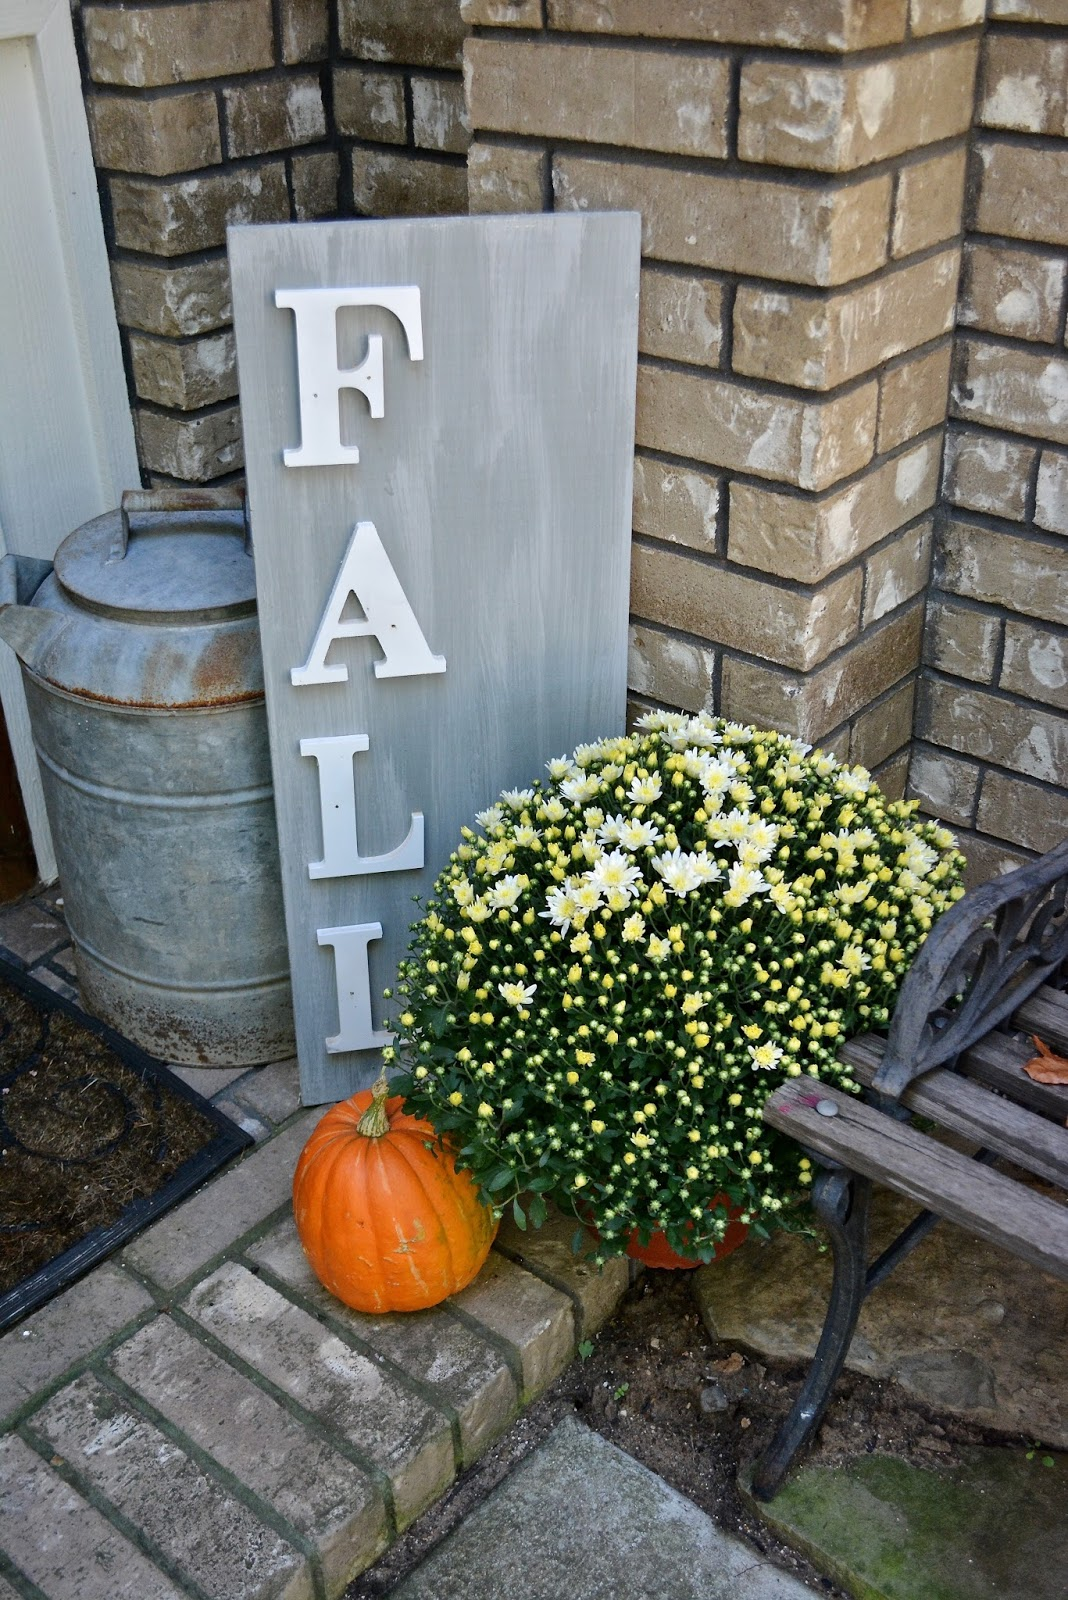 mums, pumpkin, Fall sign